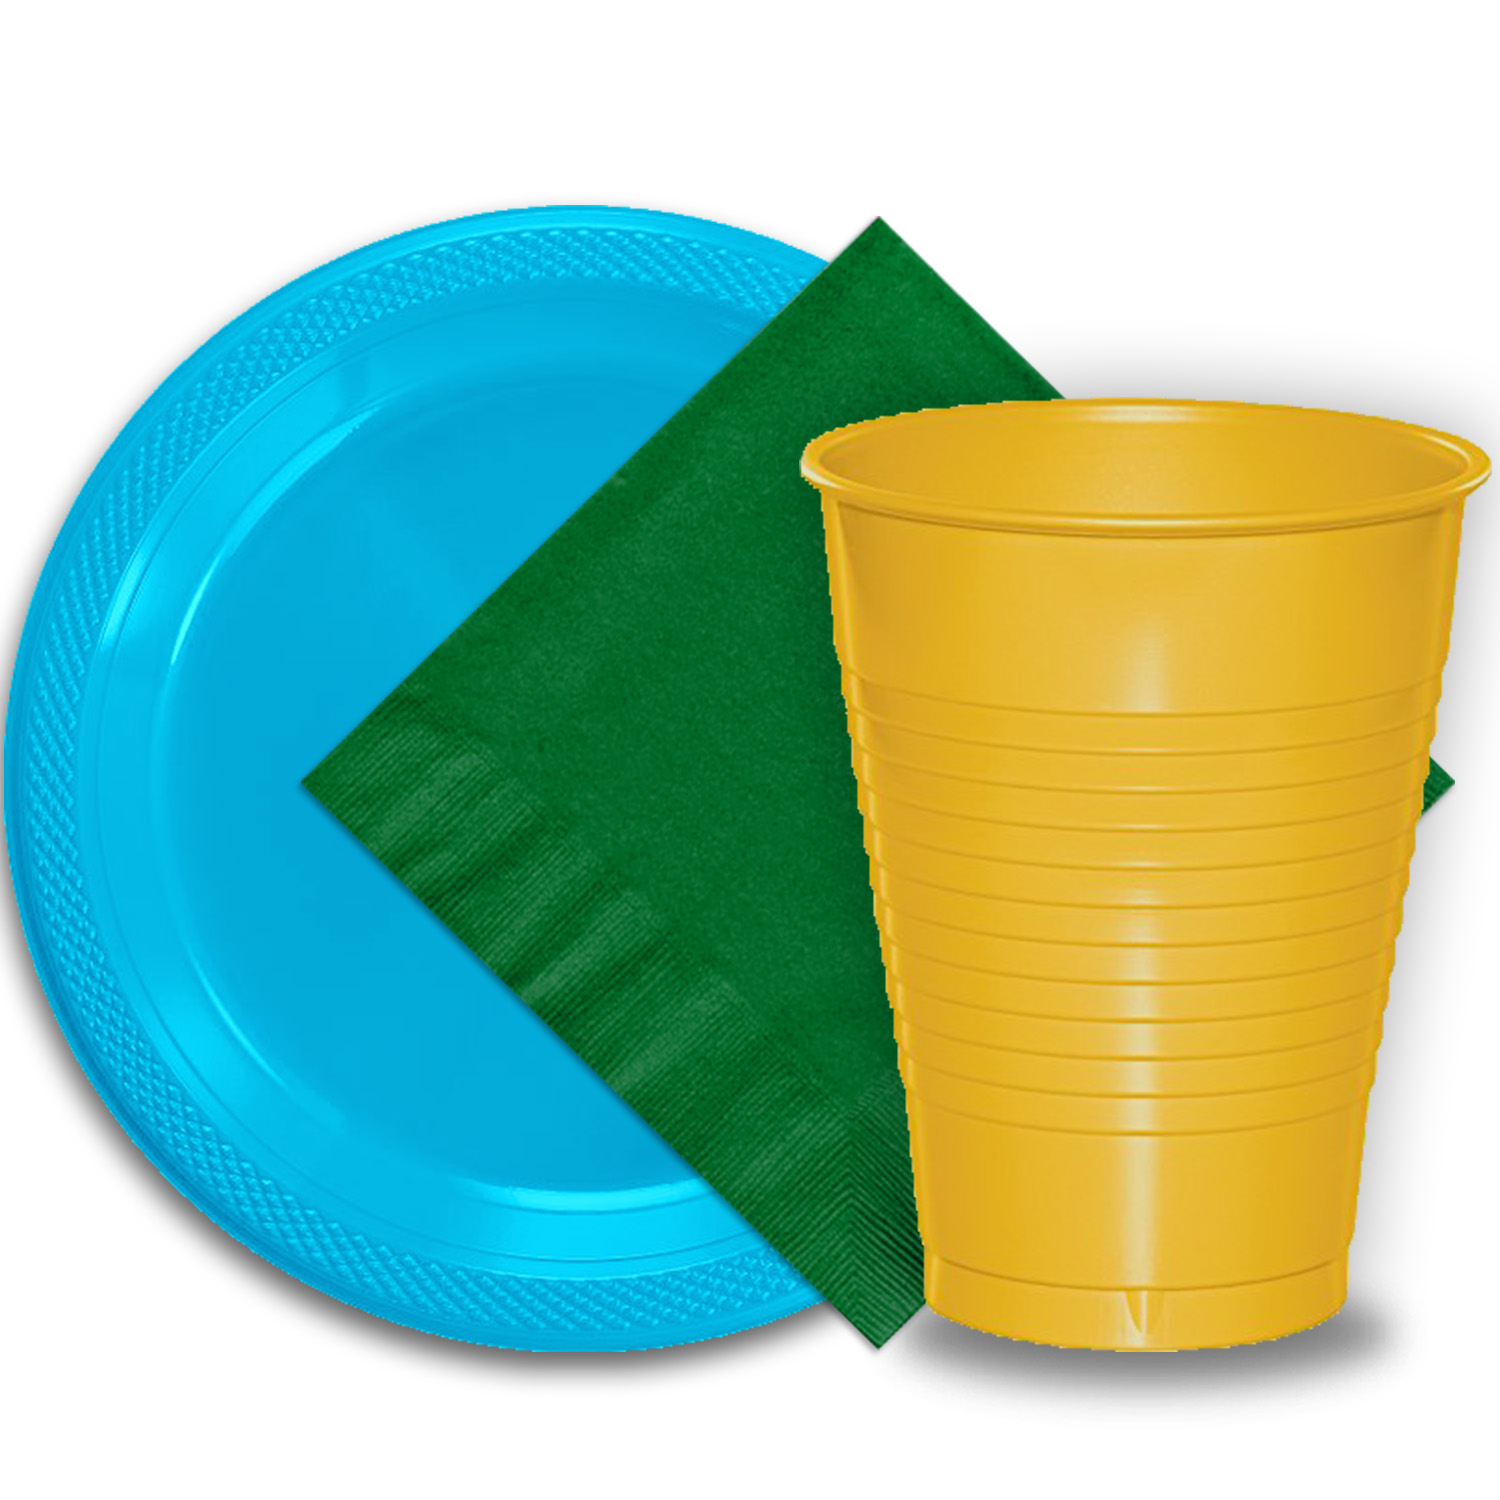 """50 Aqua Plastic Plates (9""""), 50 Yellow Plastic Cups (12 oz.), and 50 Emerald Green Paper Napkins, Dazzelling Colored Disposable Party Supplies Tableware Set for Fifty Guests."""